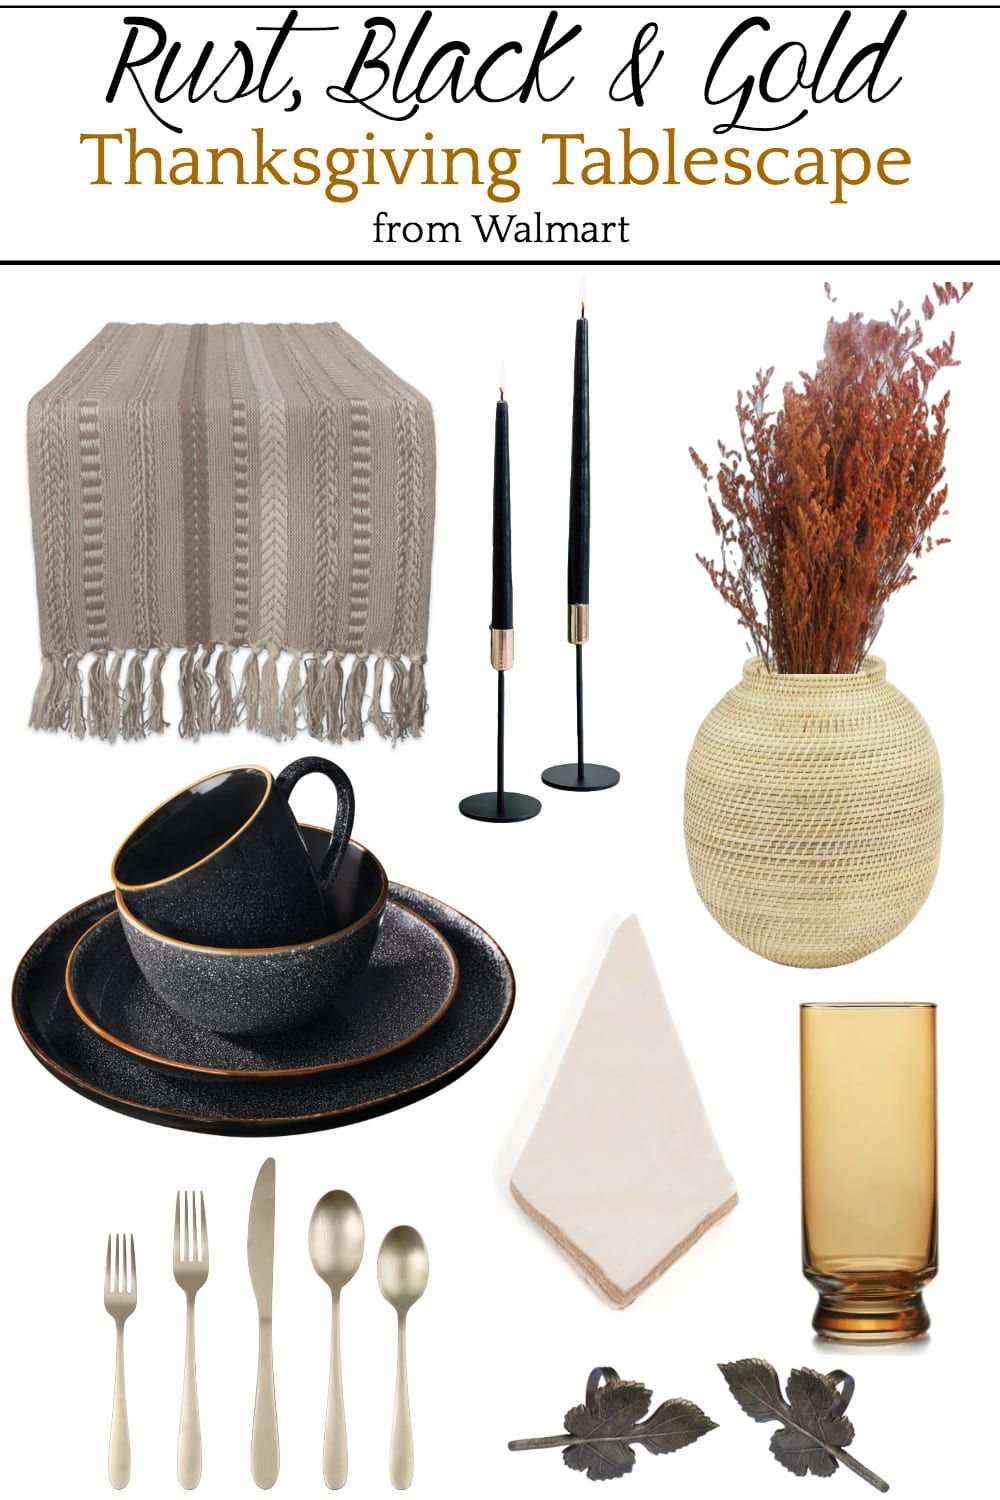 Rust, Black, and Gold Thanksgiving Tablescape Mood Board